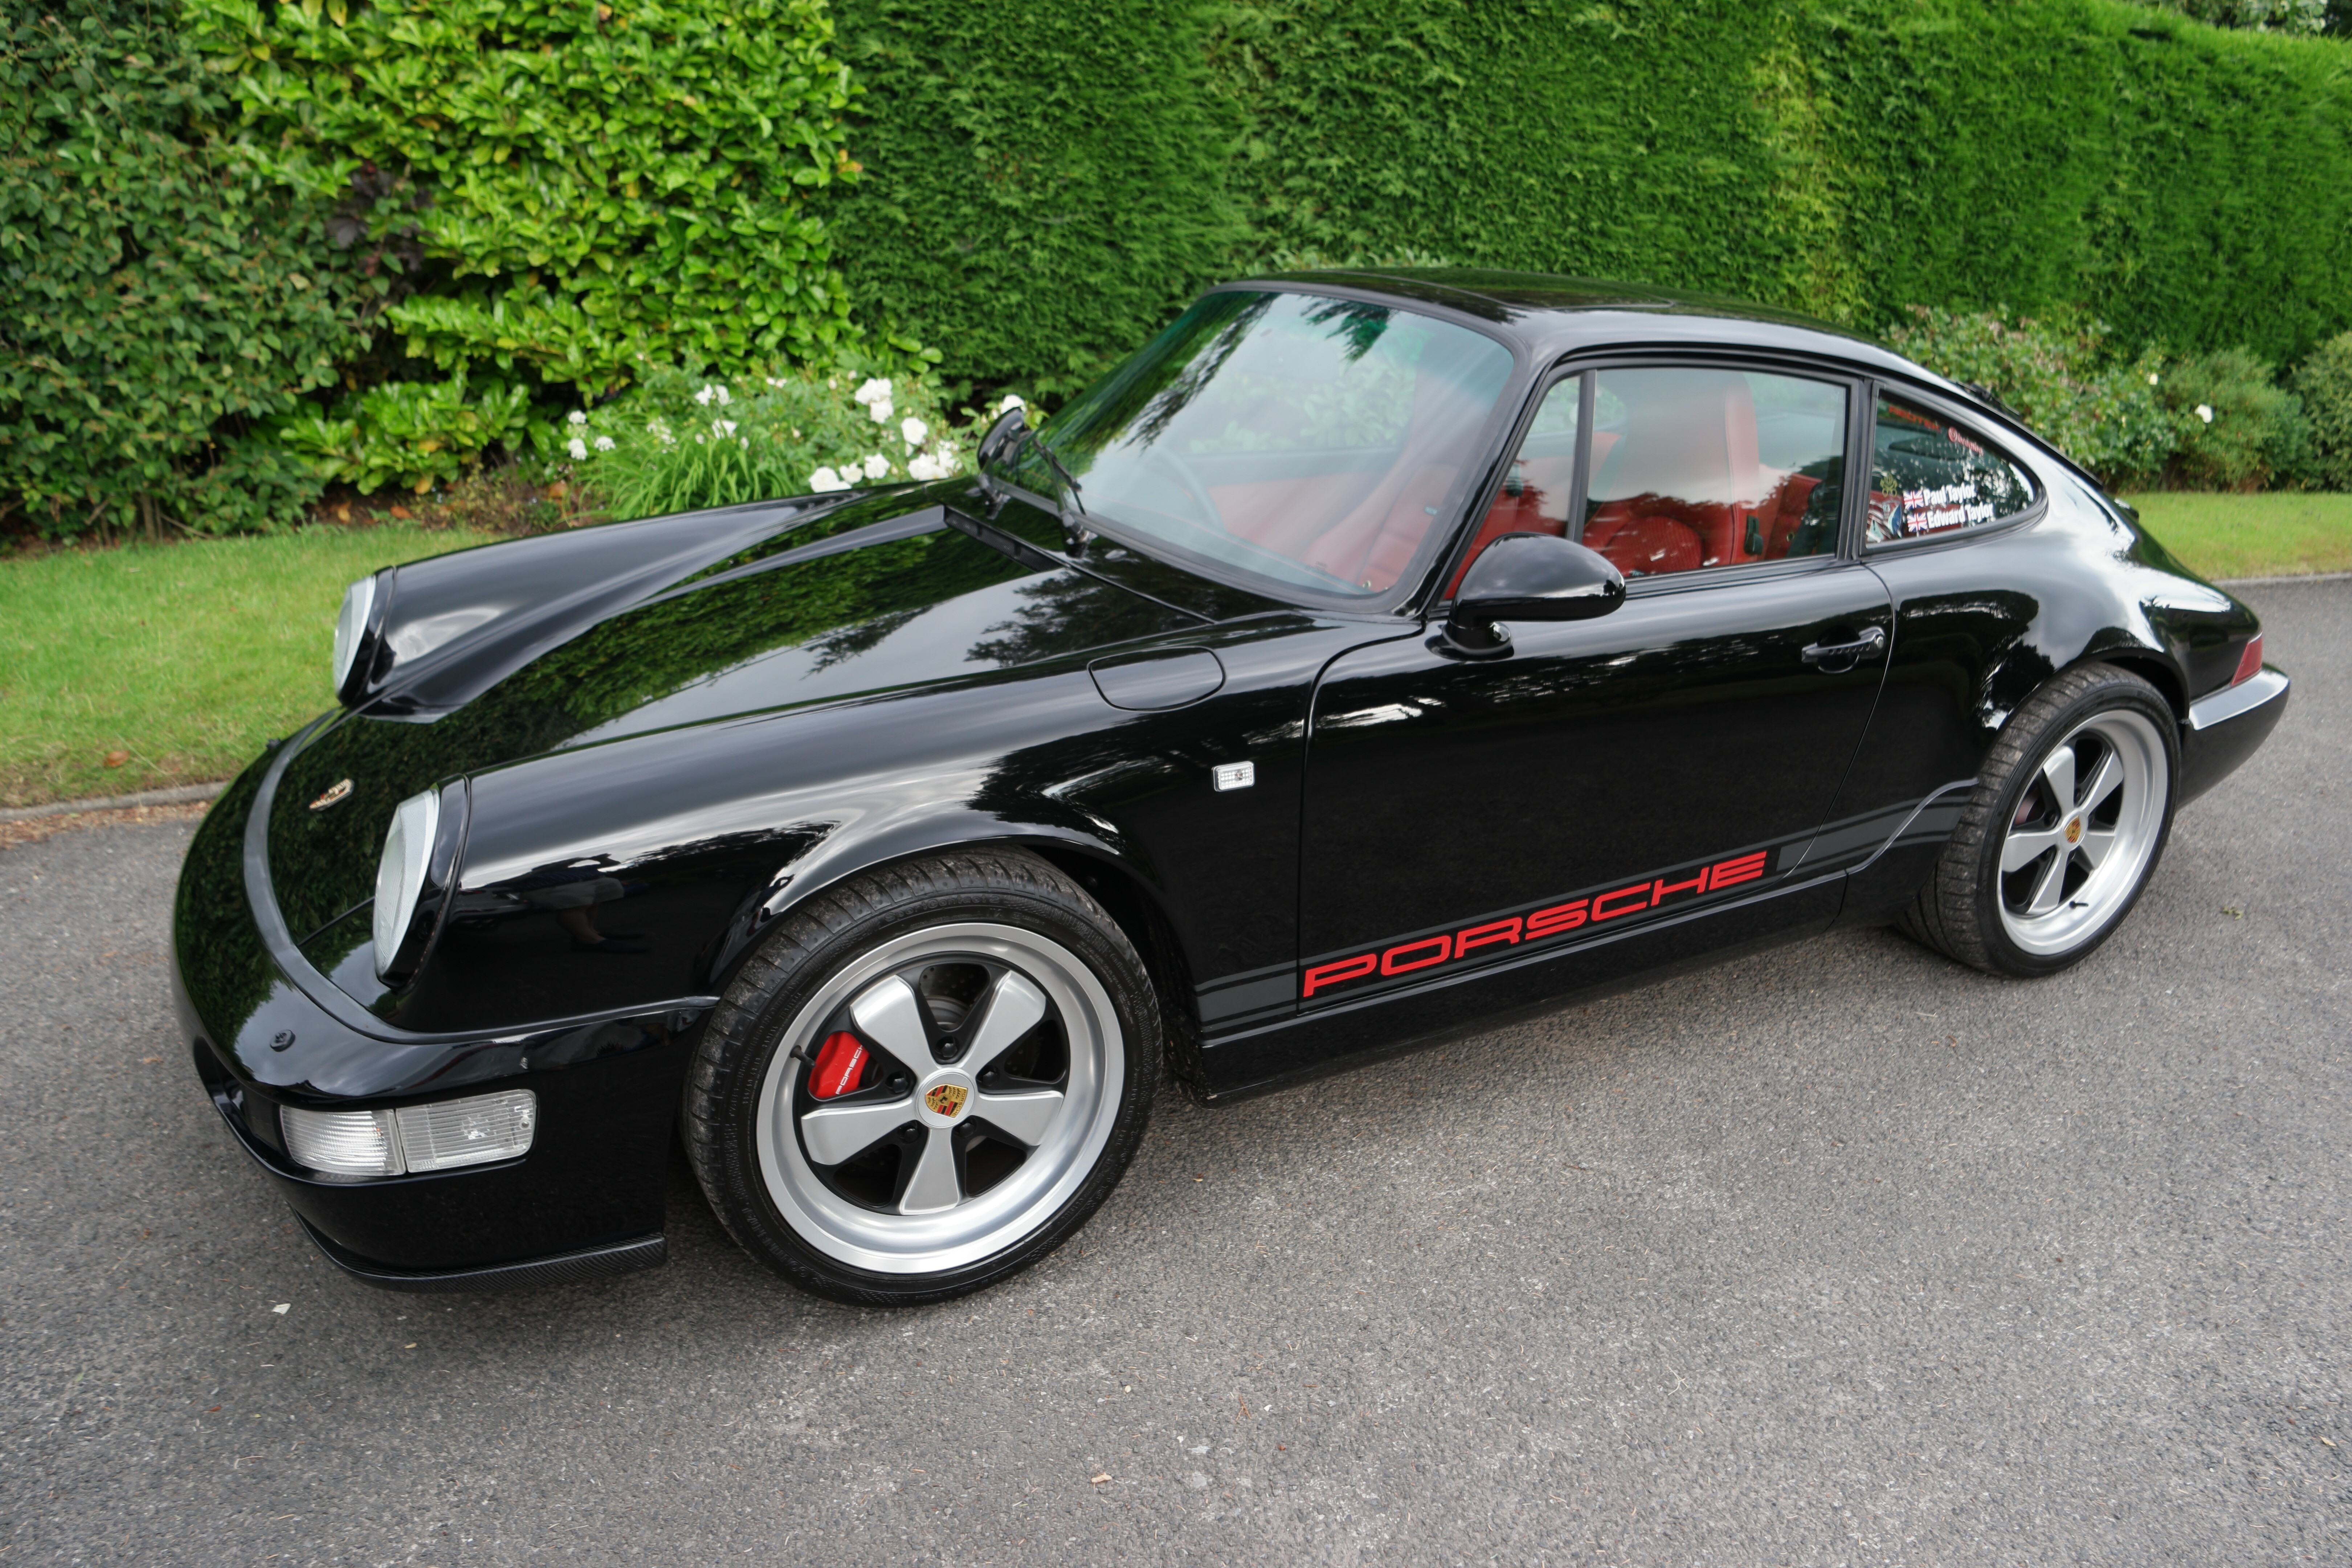 Used Porsche Project Cars Sale